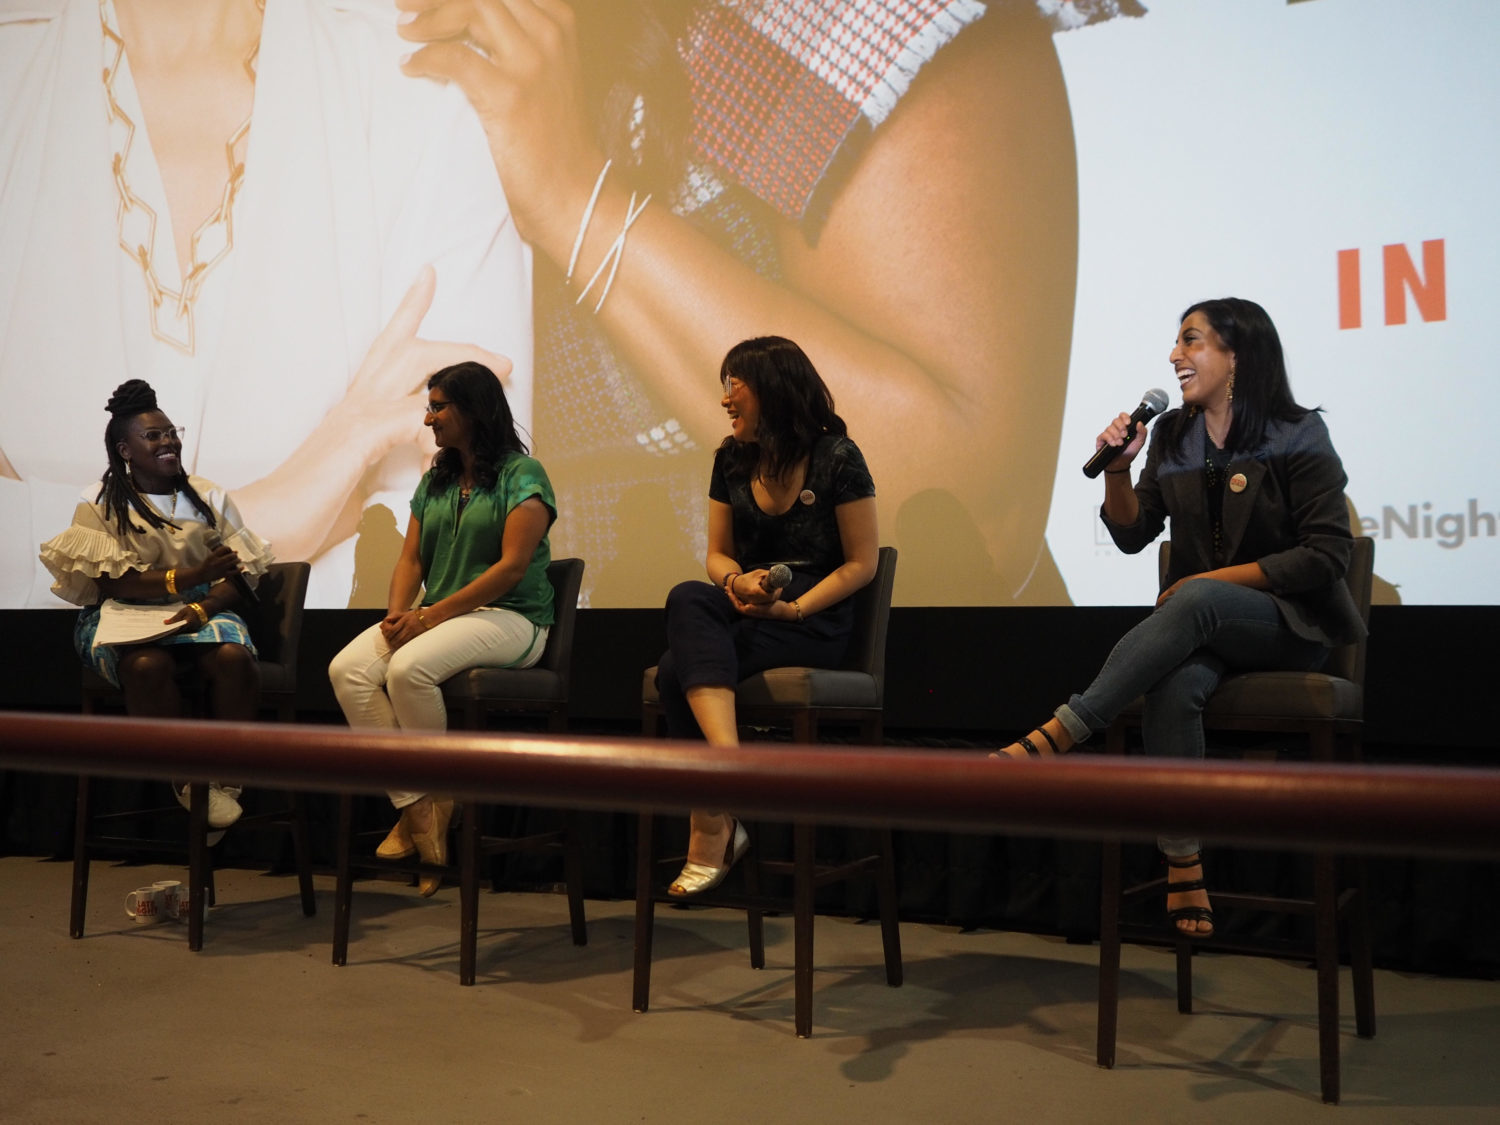 Media Girlfriends hosts a screening of 'Late Night' in Toronto on June 2, 2019. From left, Nana aba Duncan, Nelu Handa (actor, comedian and writer), Hannah Sung (digital manager at TVO) and Ishani Nath (senior editor at Flare Magazine)